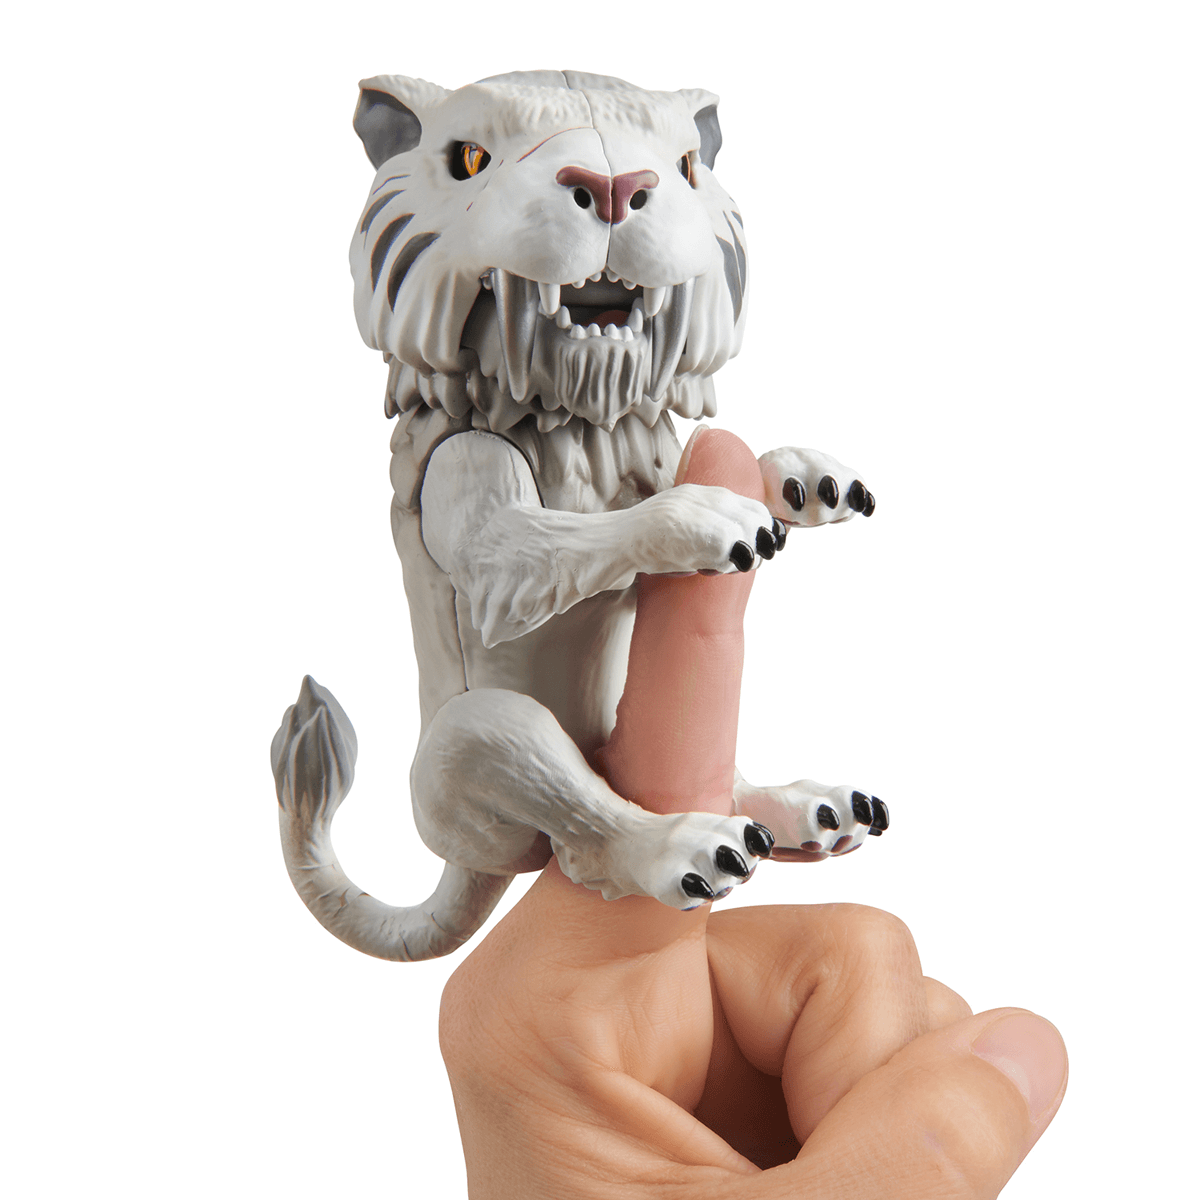 Untamed Sabre Tooth Tiger By Fingerlings Silvertooth Silver The Entertainer